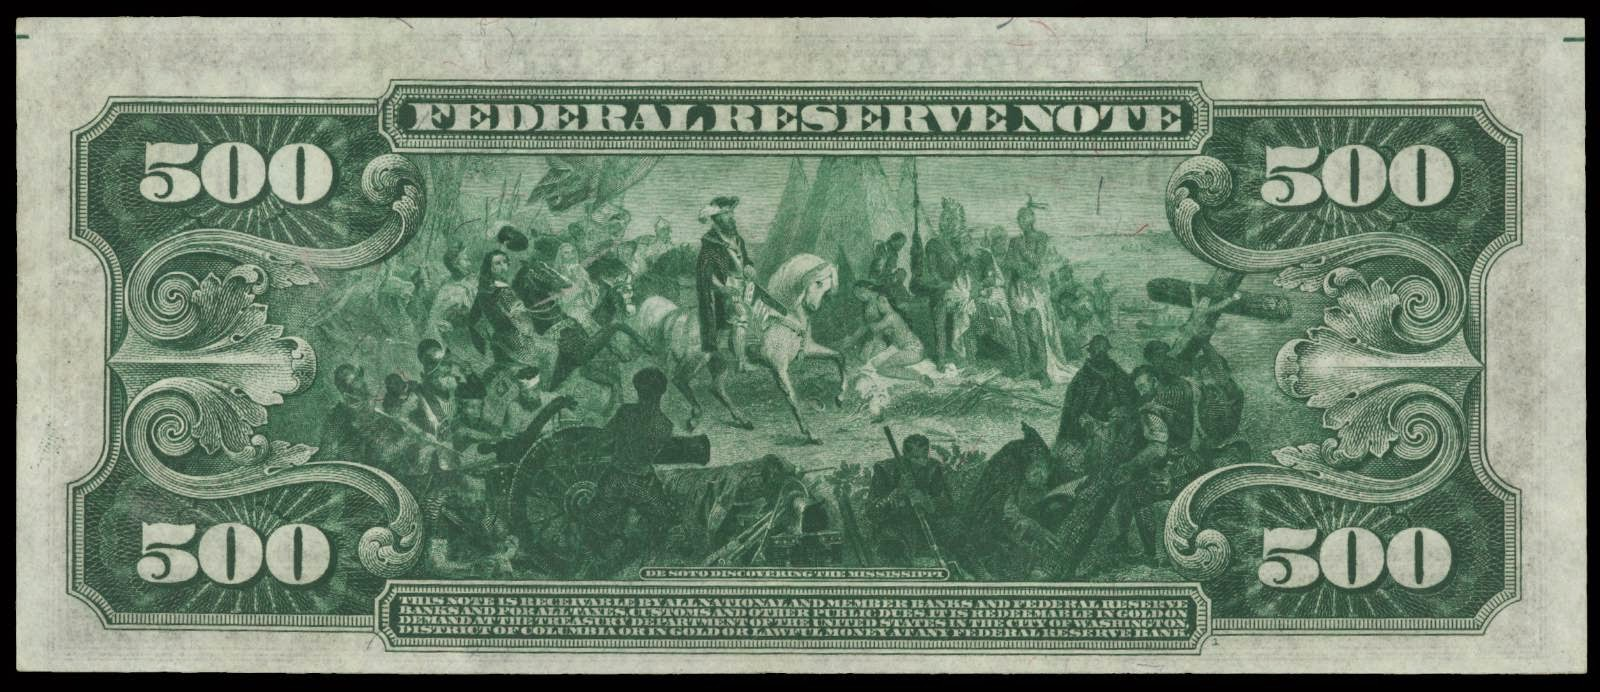 500 Dollars Note De Soto discovering the Mississippi